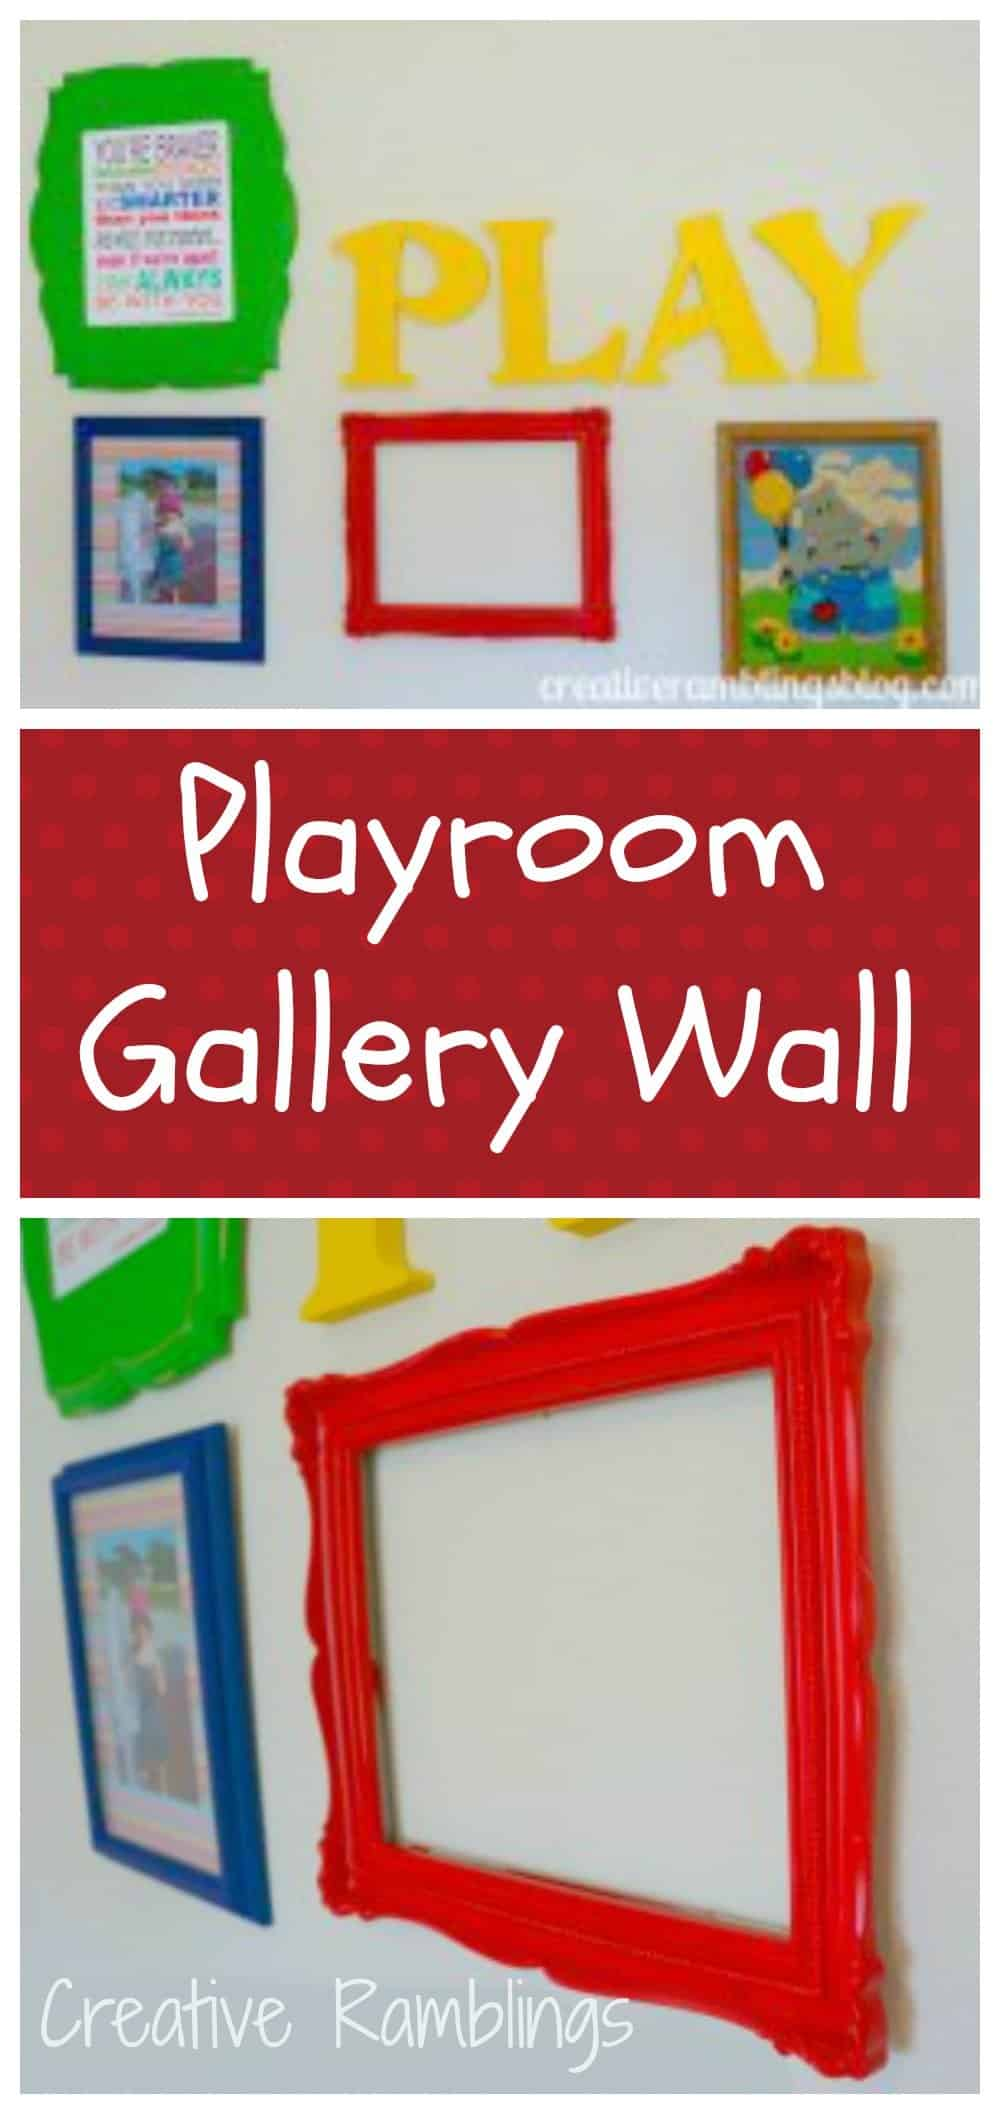 playroom wall art  sc 1 st  Creative Ramblings : playroom wall art - www.pureclipart.com